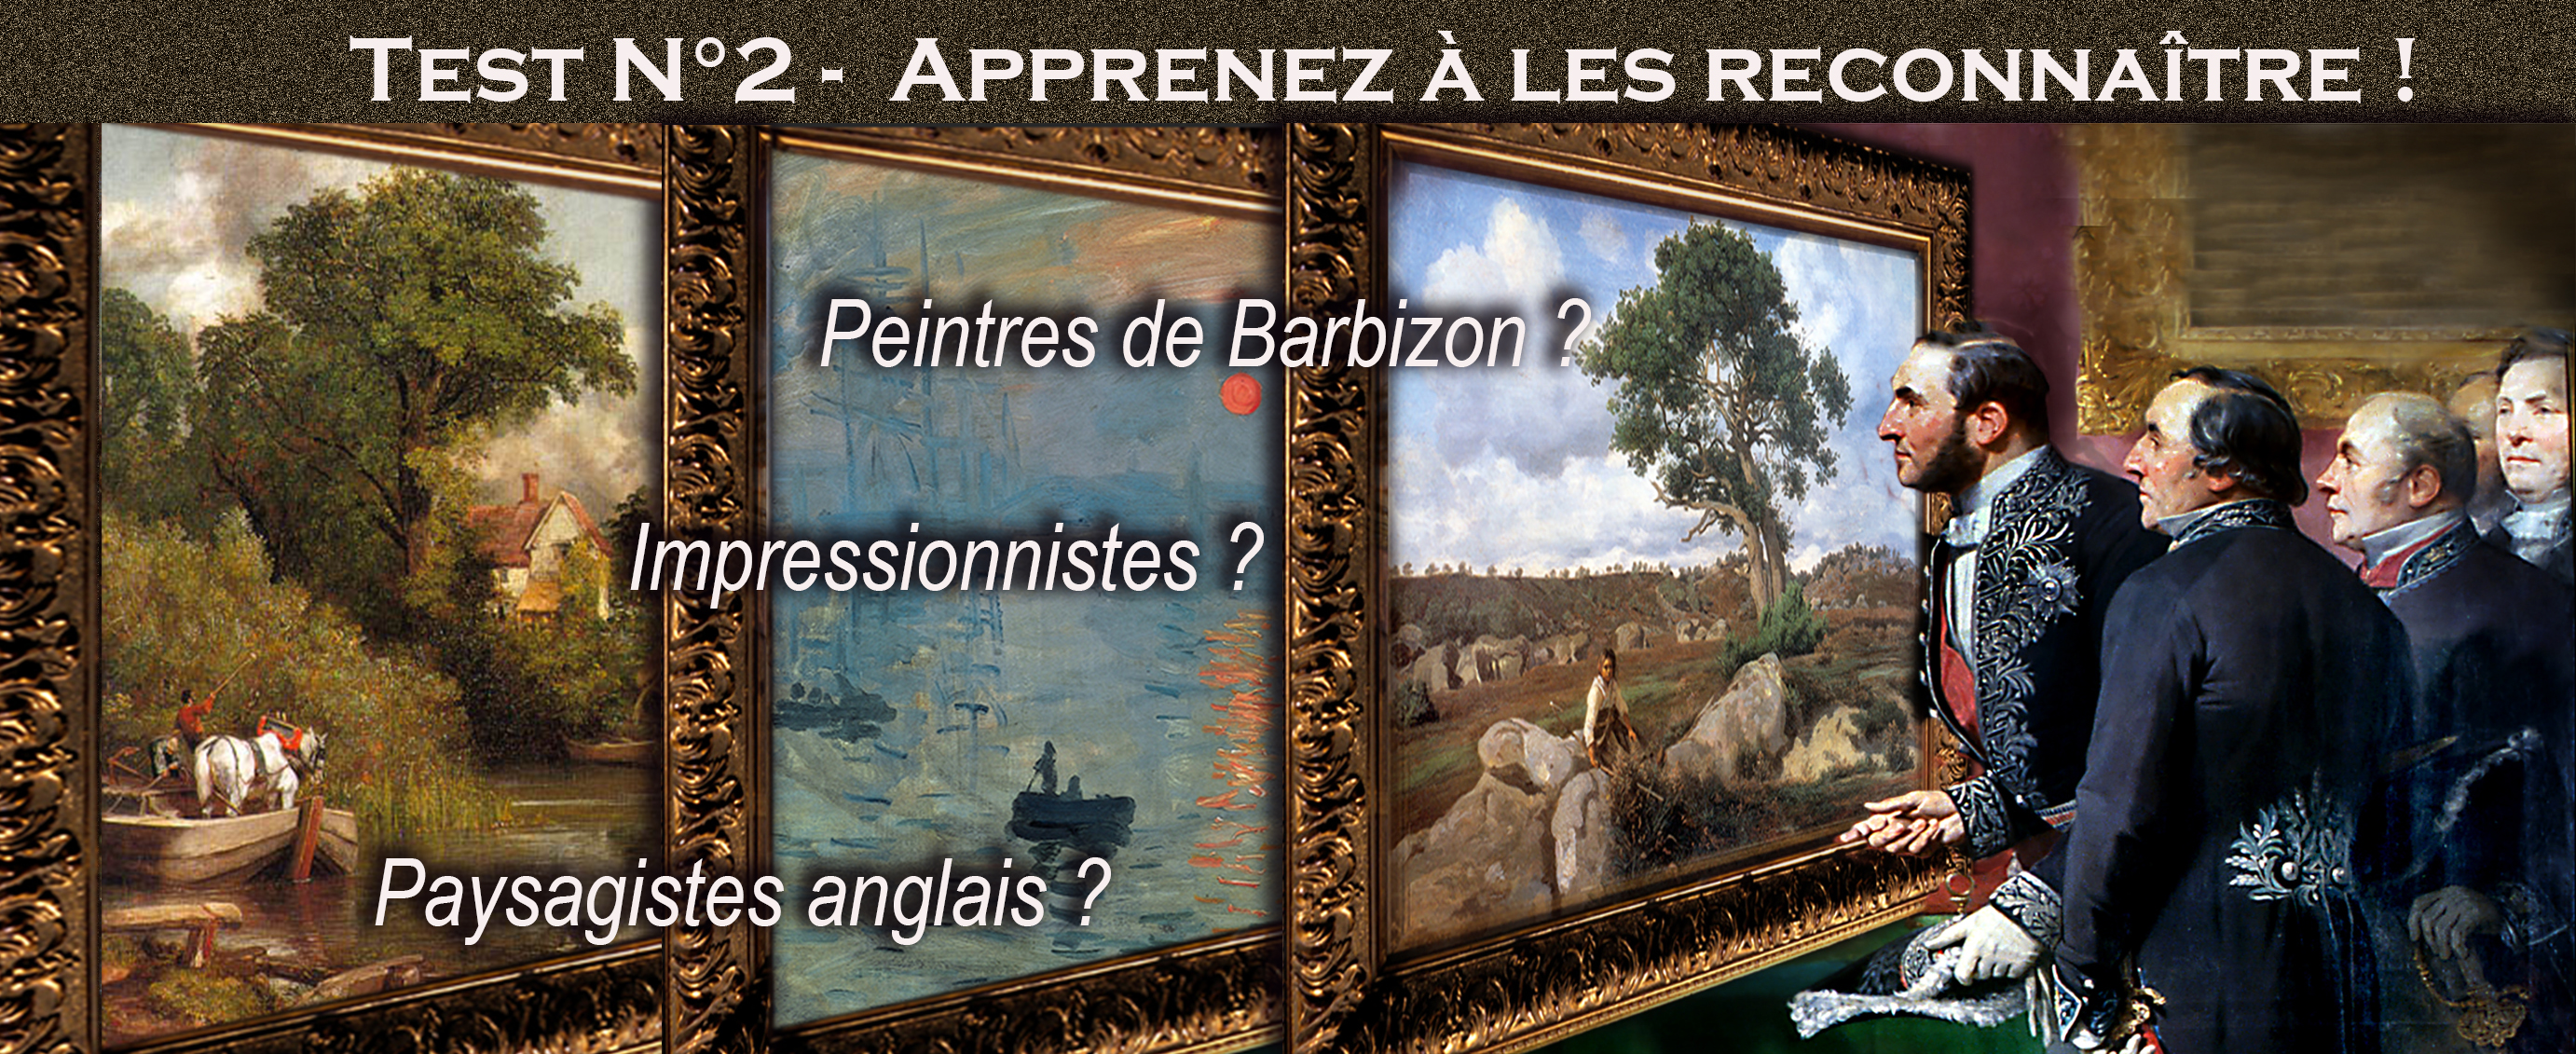 Reconnaitre Barbizon, etc1 copie.jpg